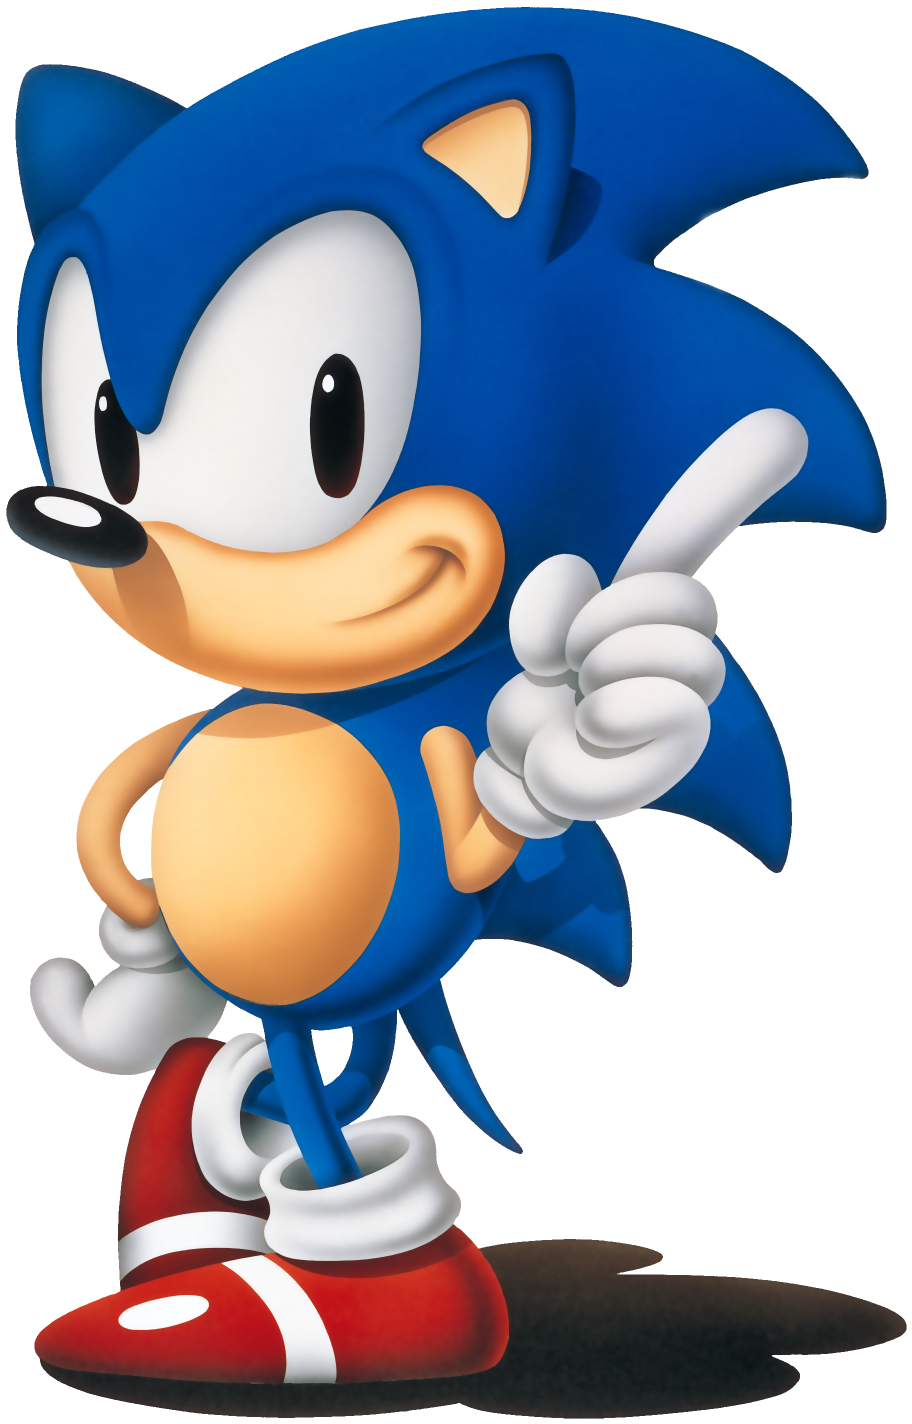 Sonic the Hedgehog movie speeding to theaters in 2019